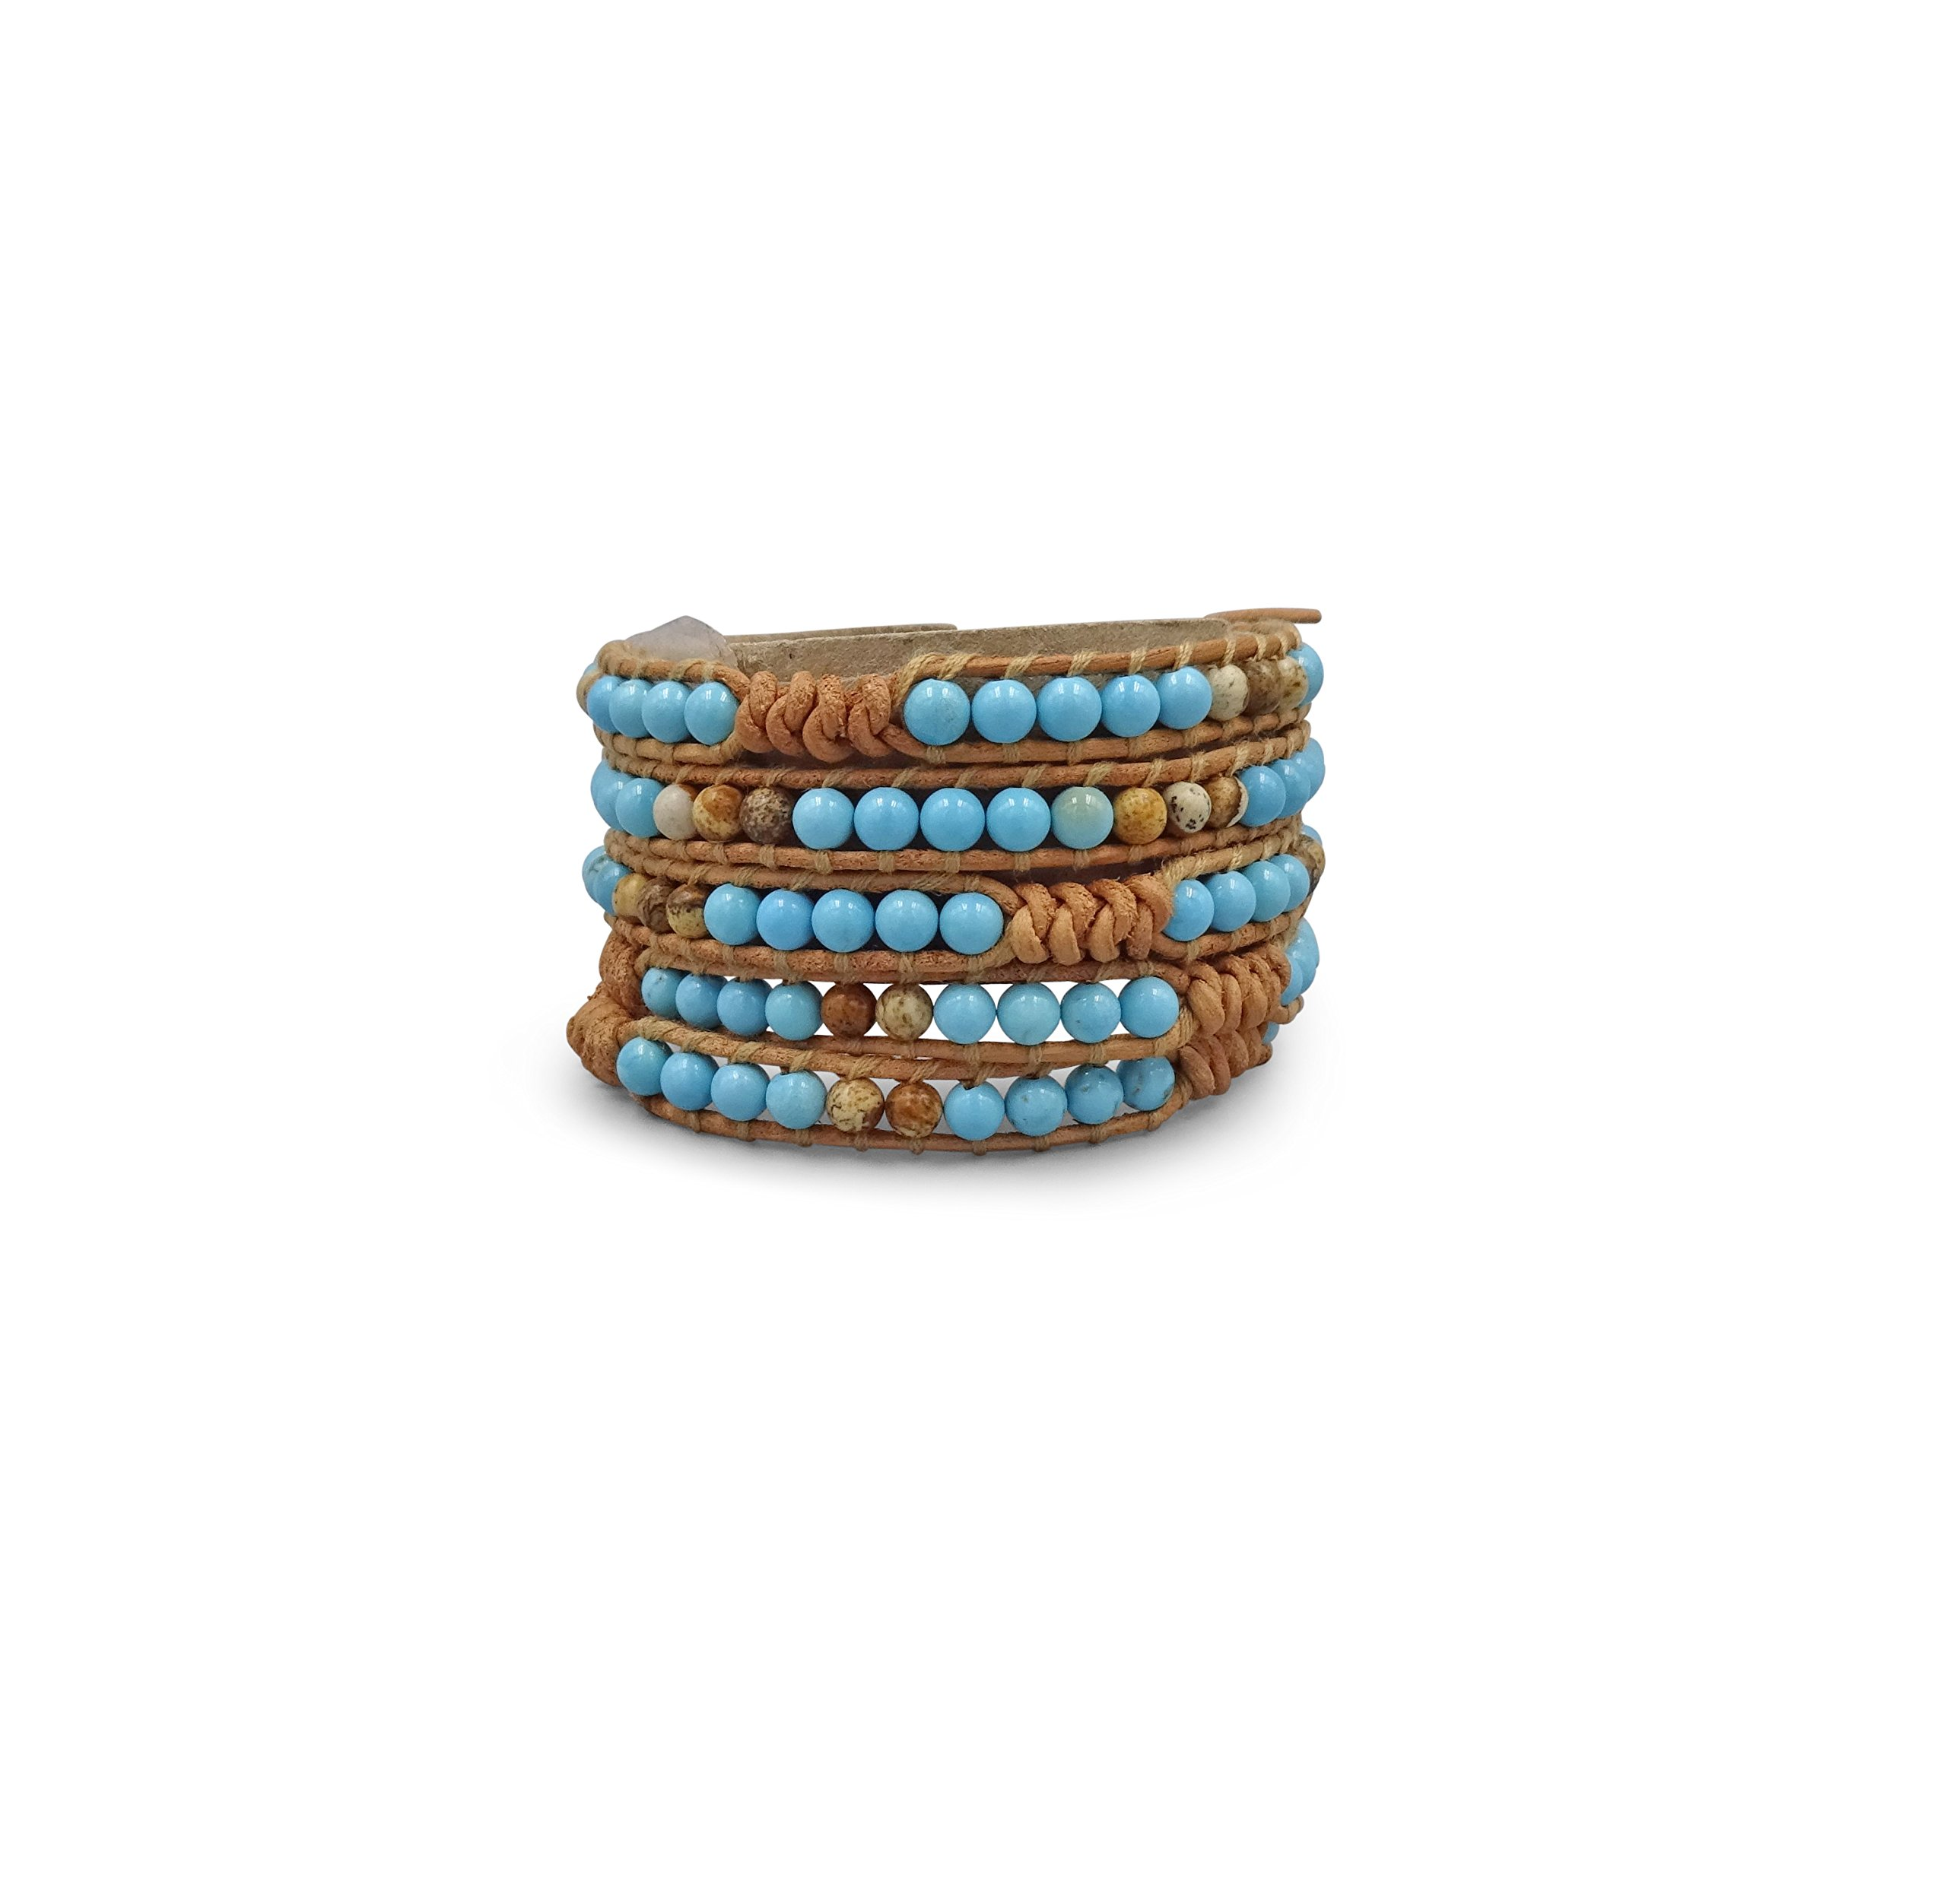 MGR Multi-layer Hand Crafted Boho Blue Turquoise Stone Beaded on Genuine Leather Super 5 Wrap Bracelet 35'' Long.